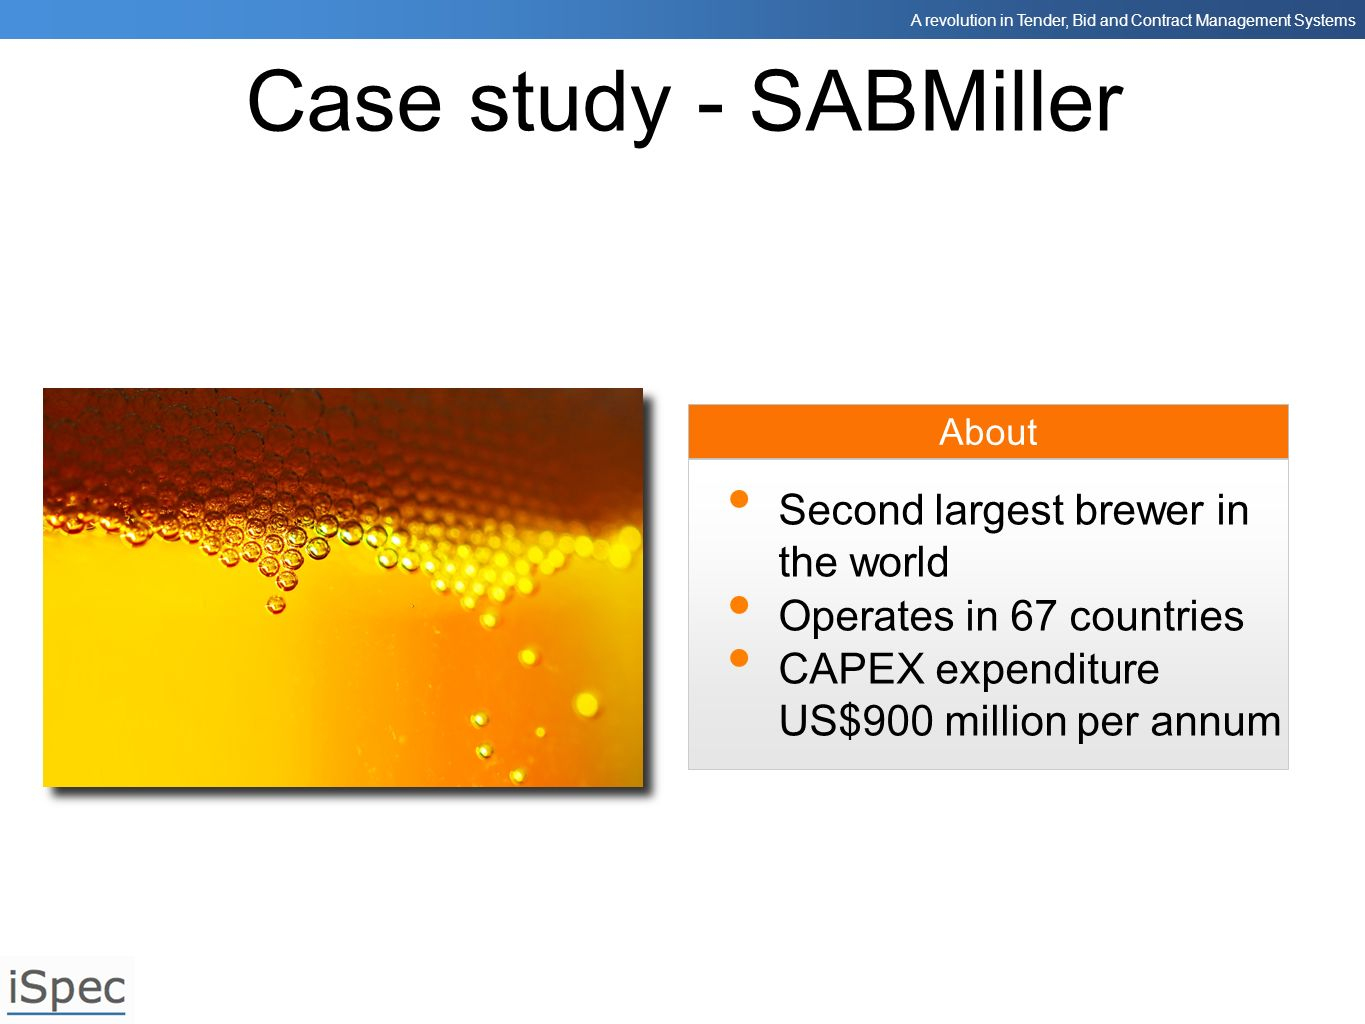 Case study - SABMiller Second largest brewer in the world